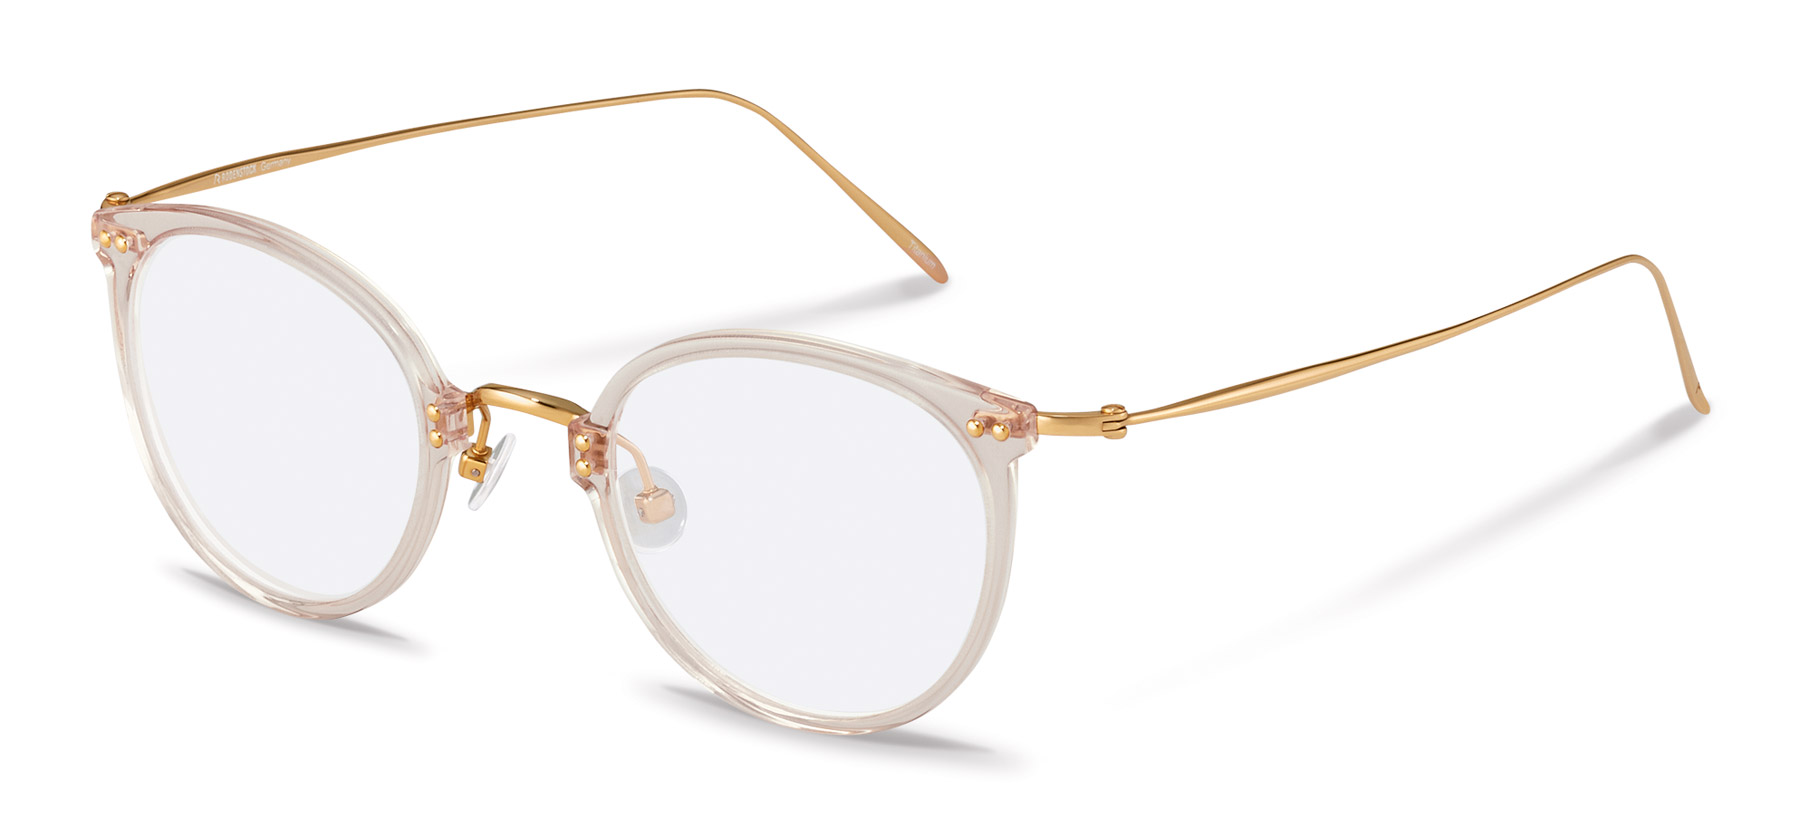 Rodenstock-Correction frame-R7079-apricot/gold